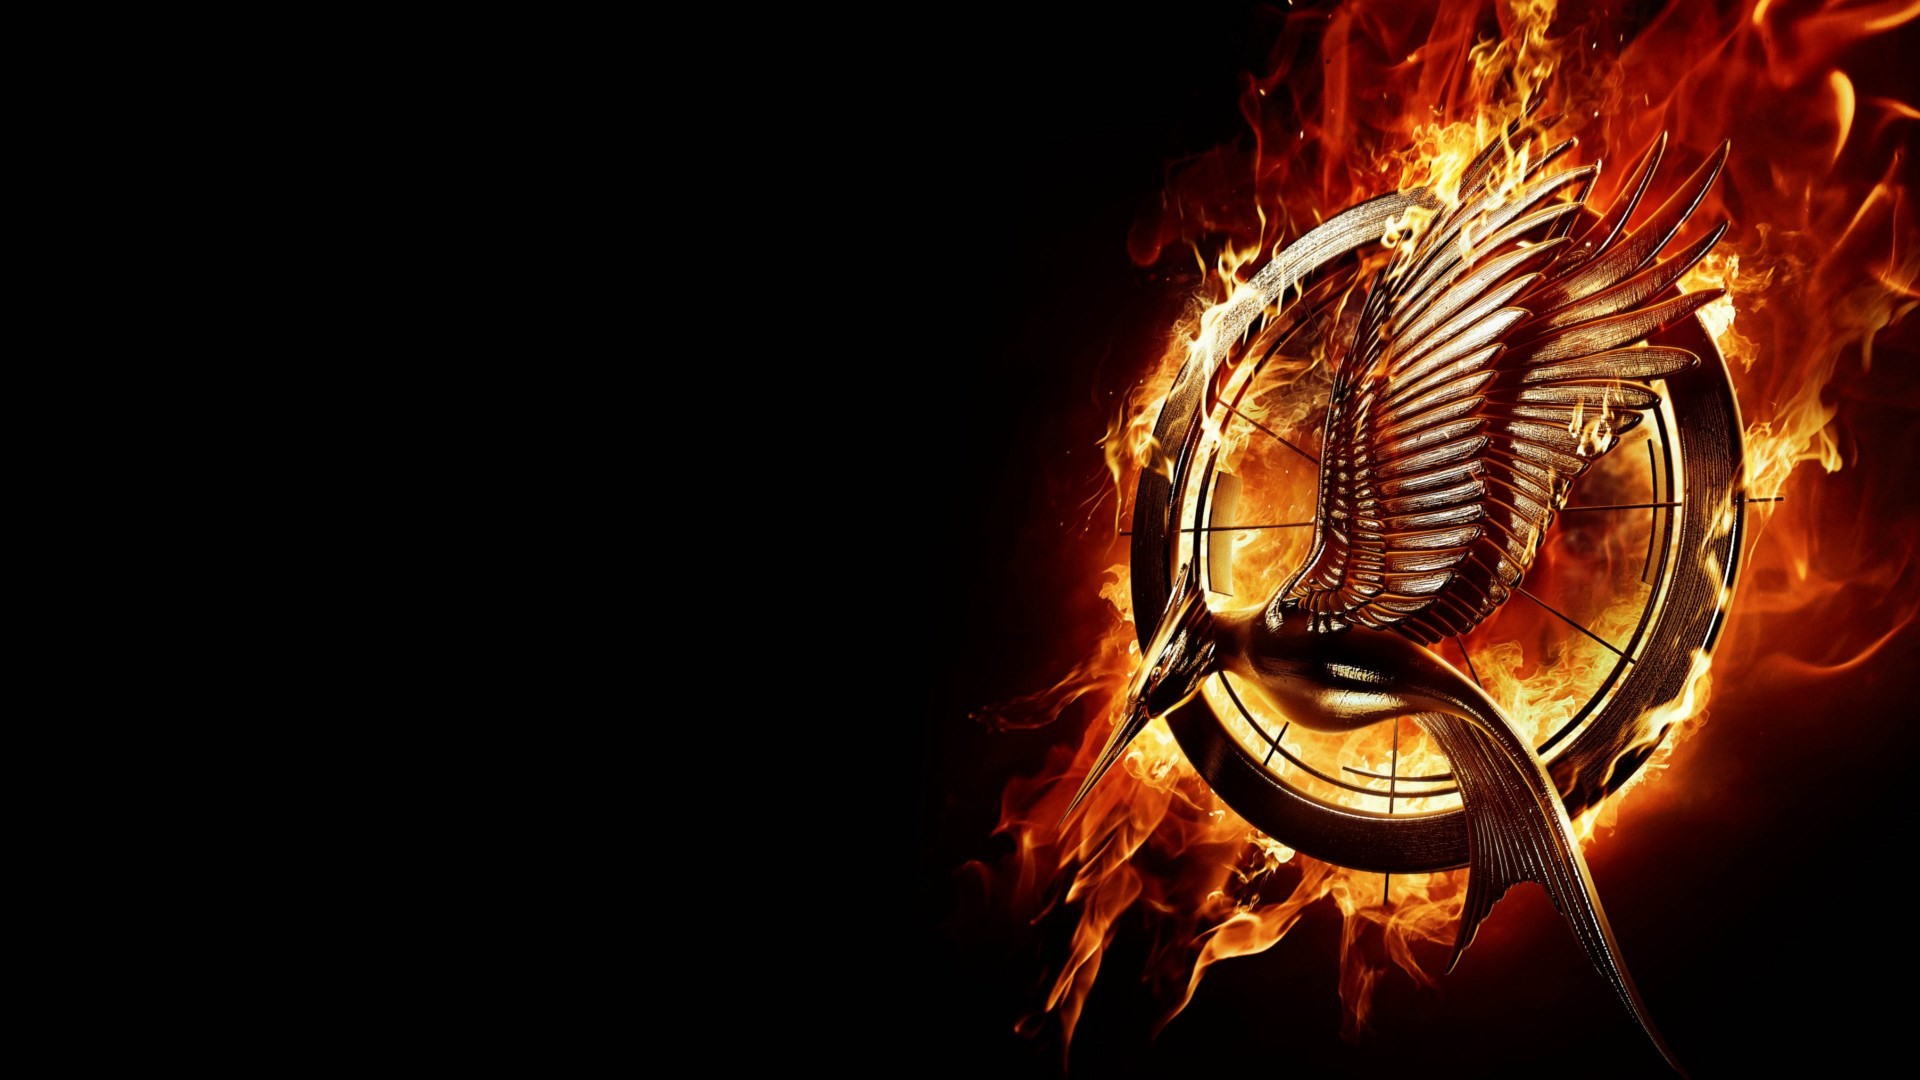 1920x1080 Wallpaper for Desktop: the hunger games catching fire